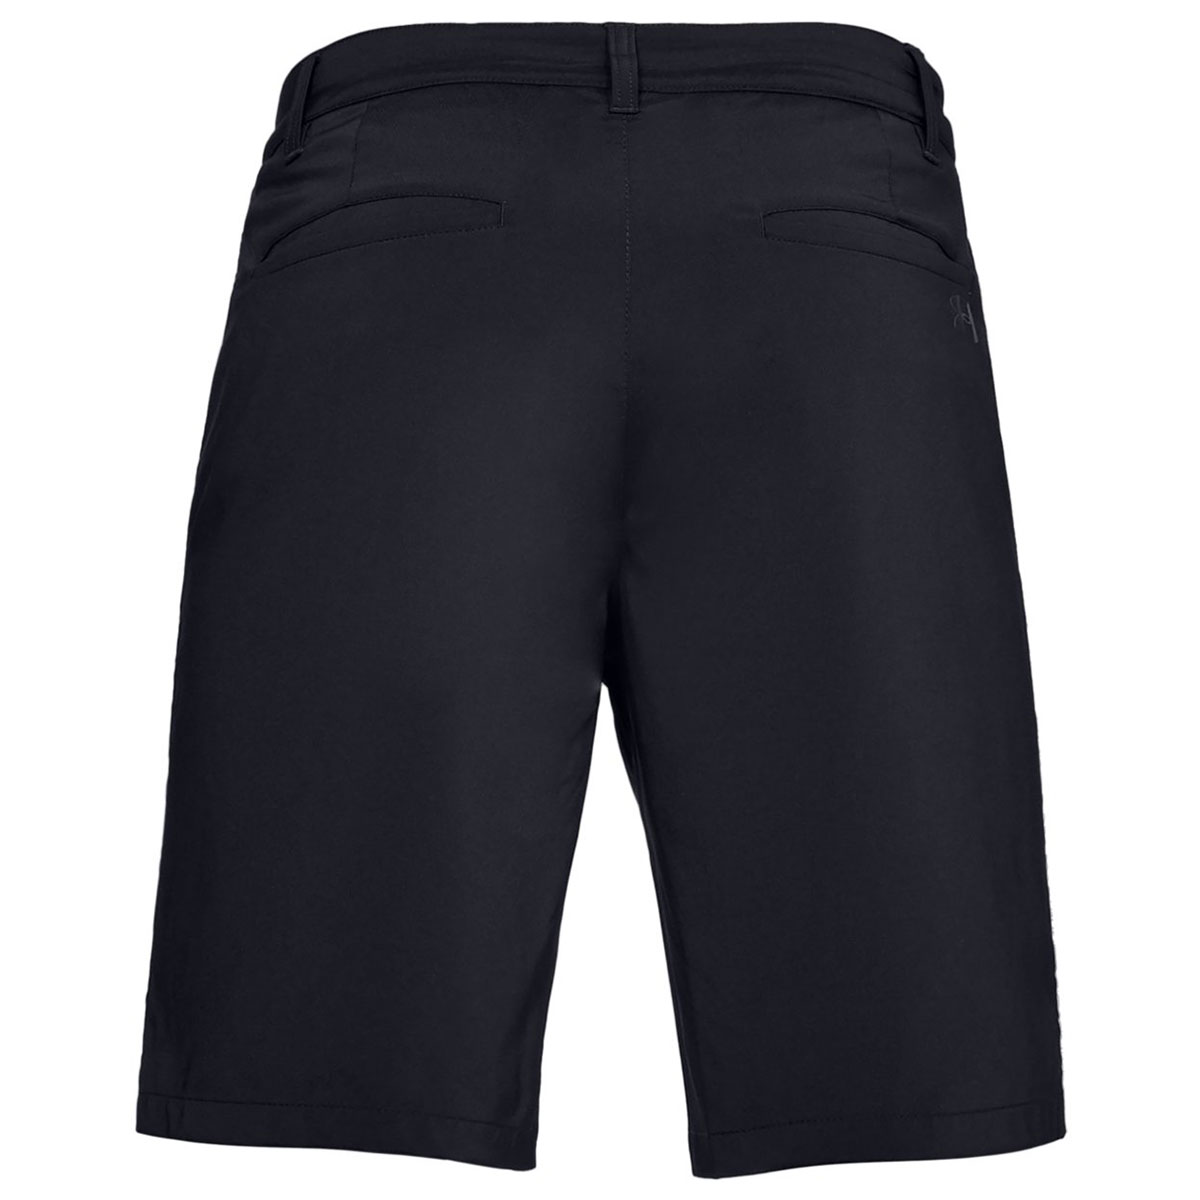 Under-Armour-Mens-EU-Tech-Stretch-Soft-Fitted-Golf-Shorts thumbnail 5